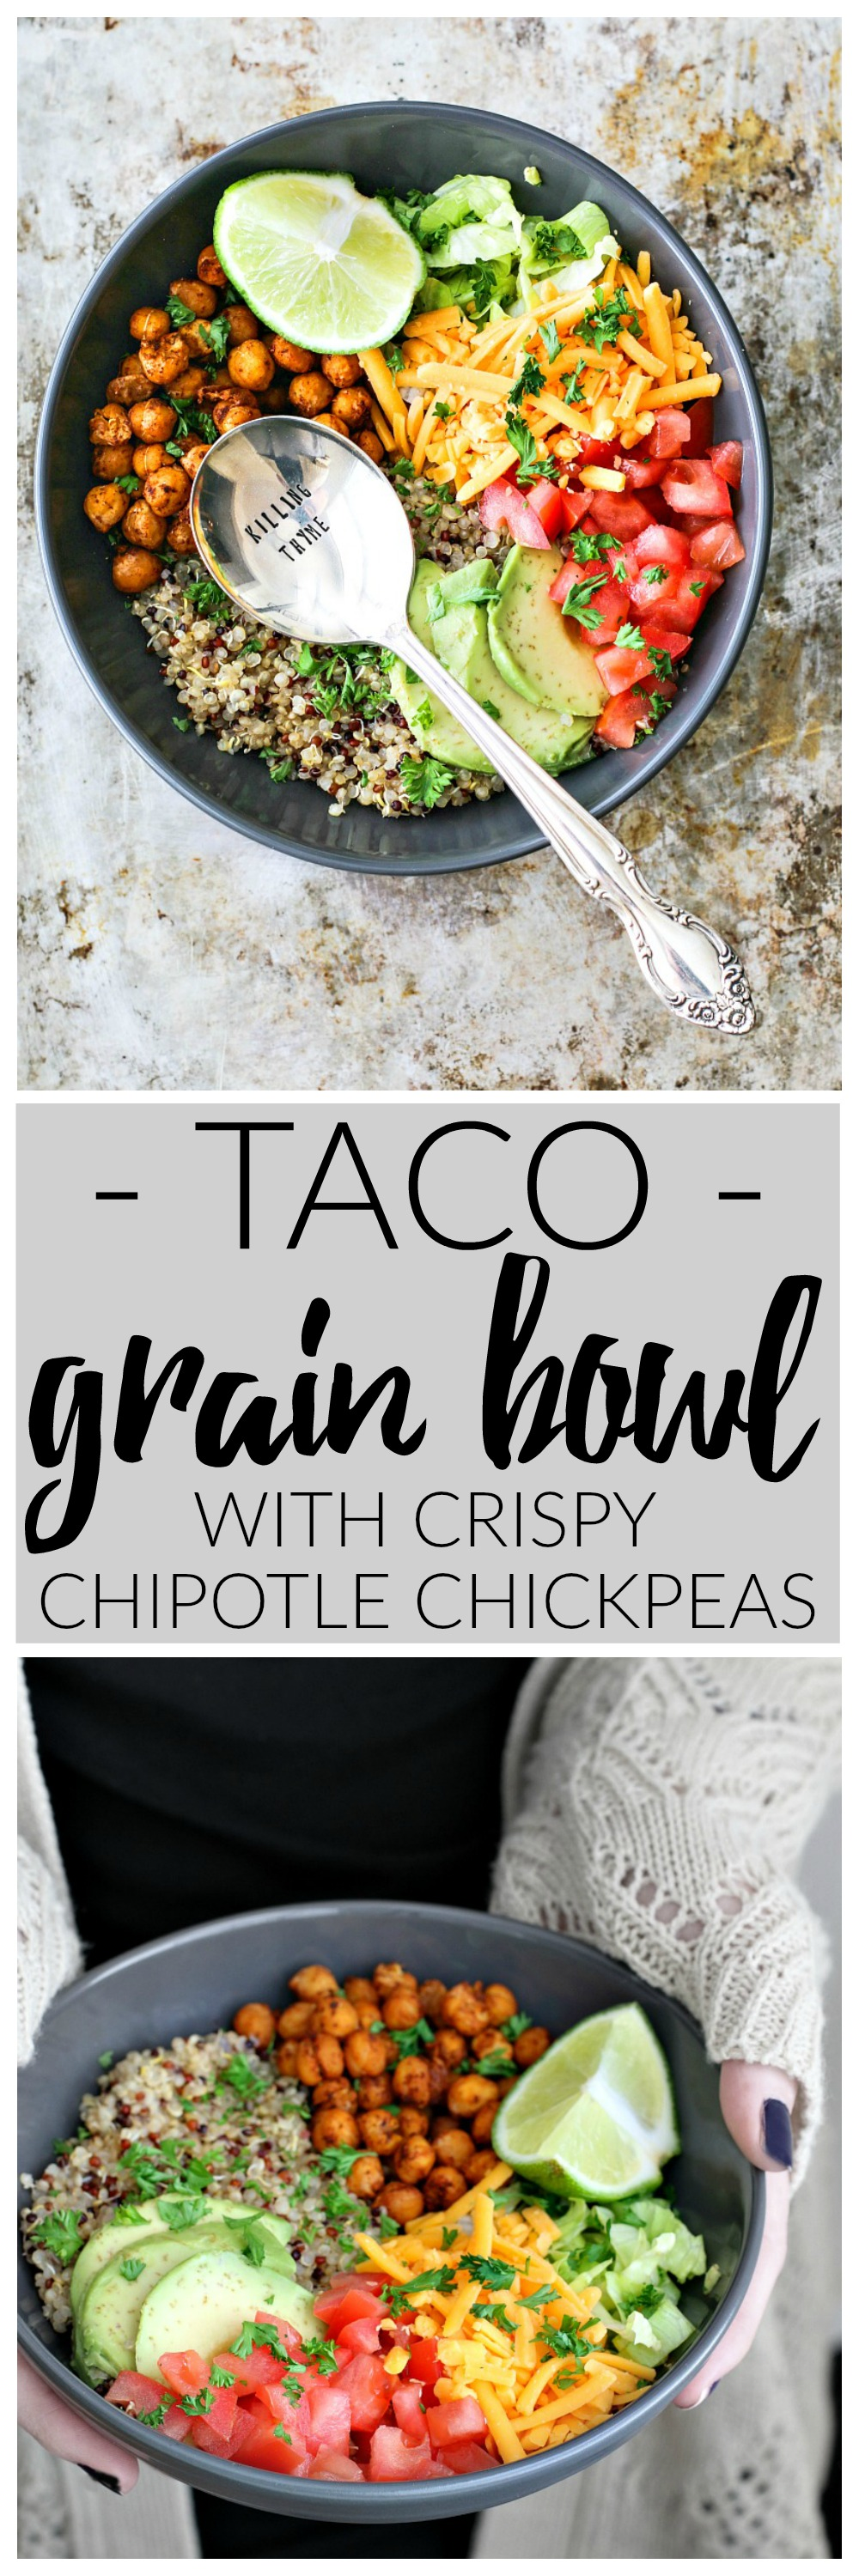 Taco Grain Bowl With Crispy Chipotle Chickpeas | Killing Thyme